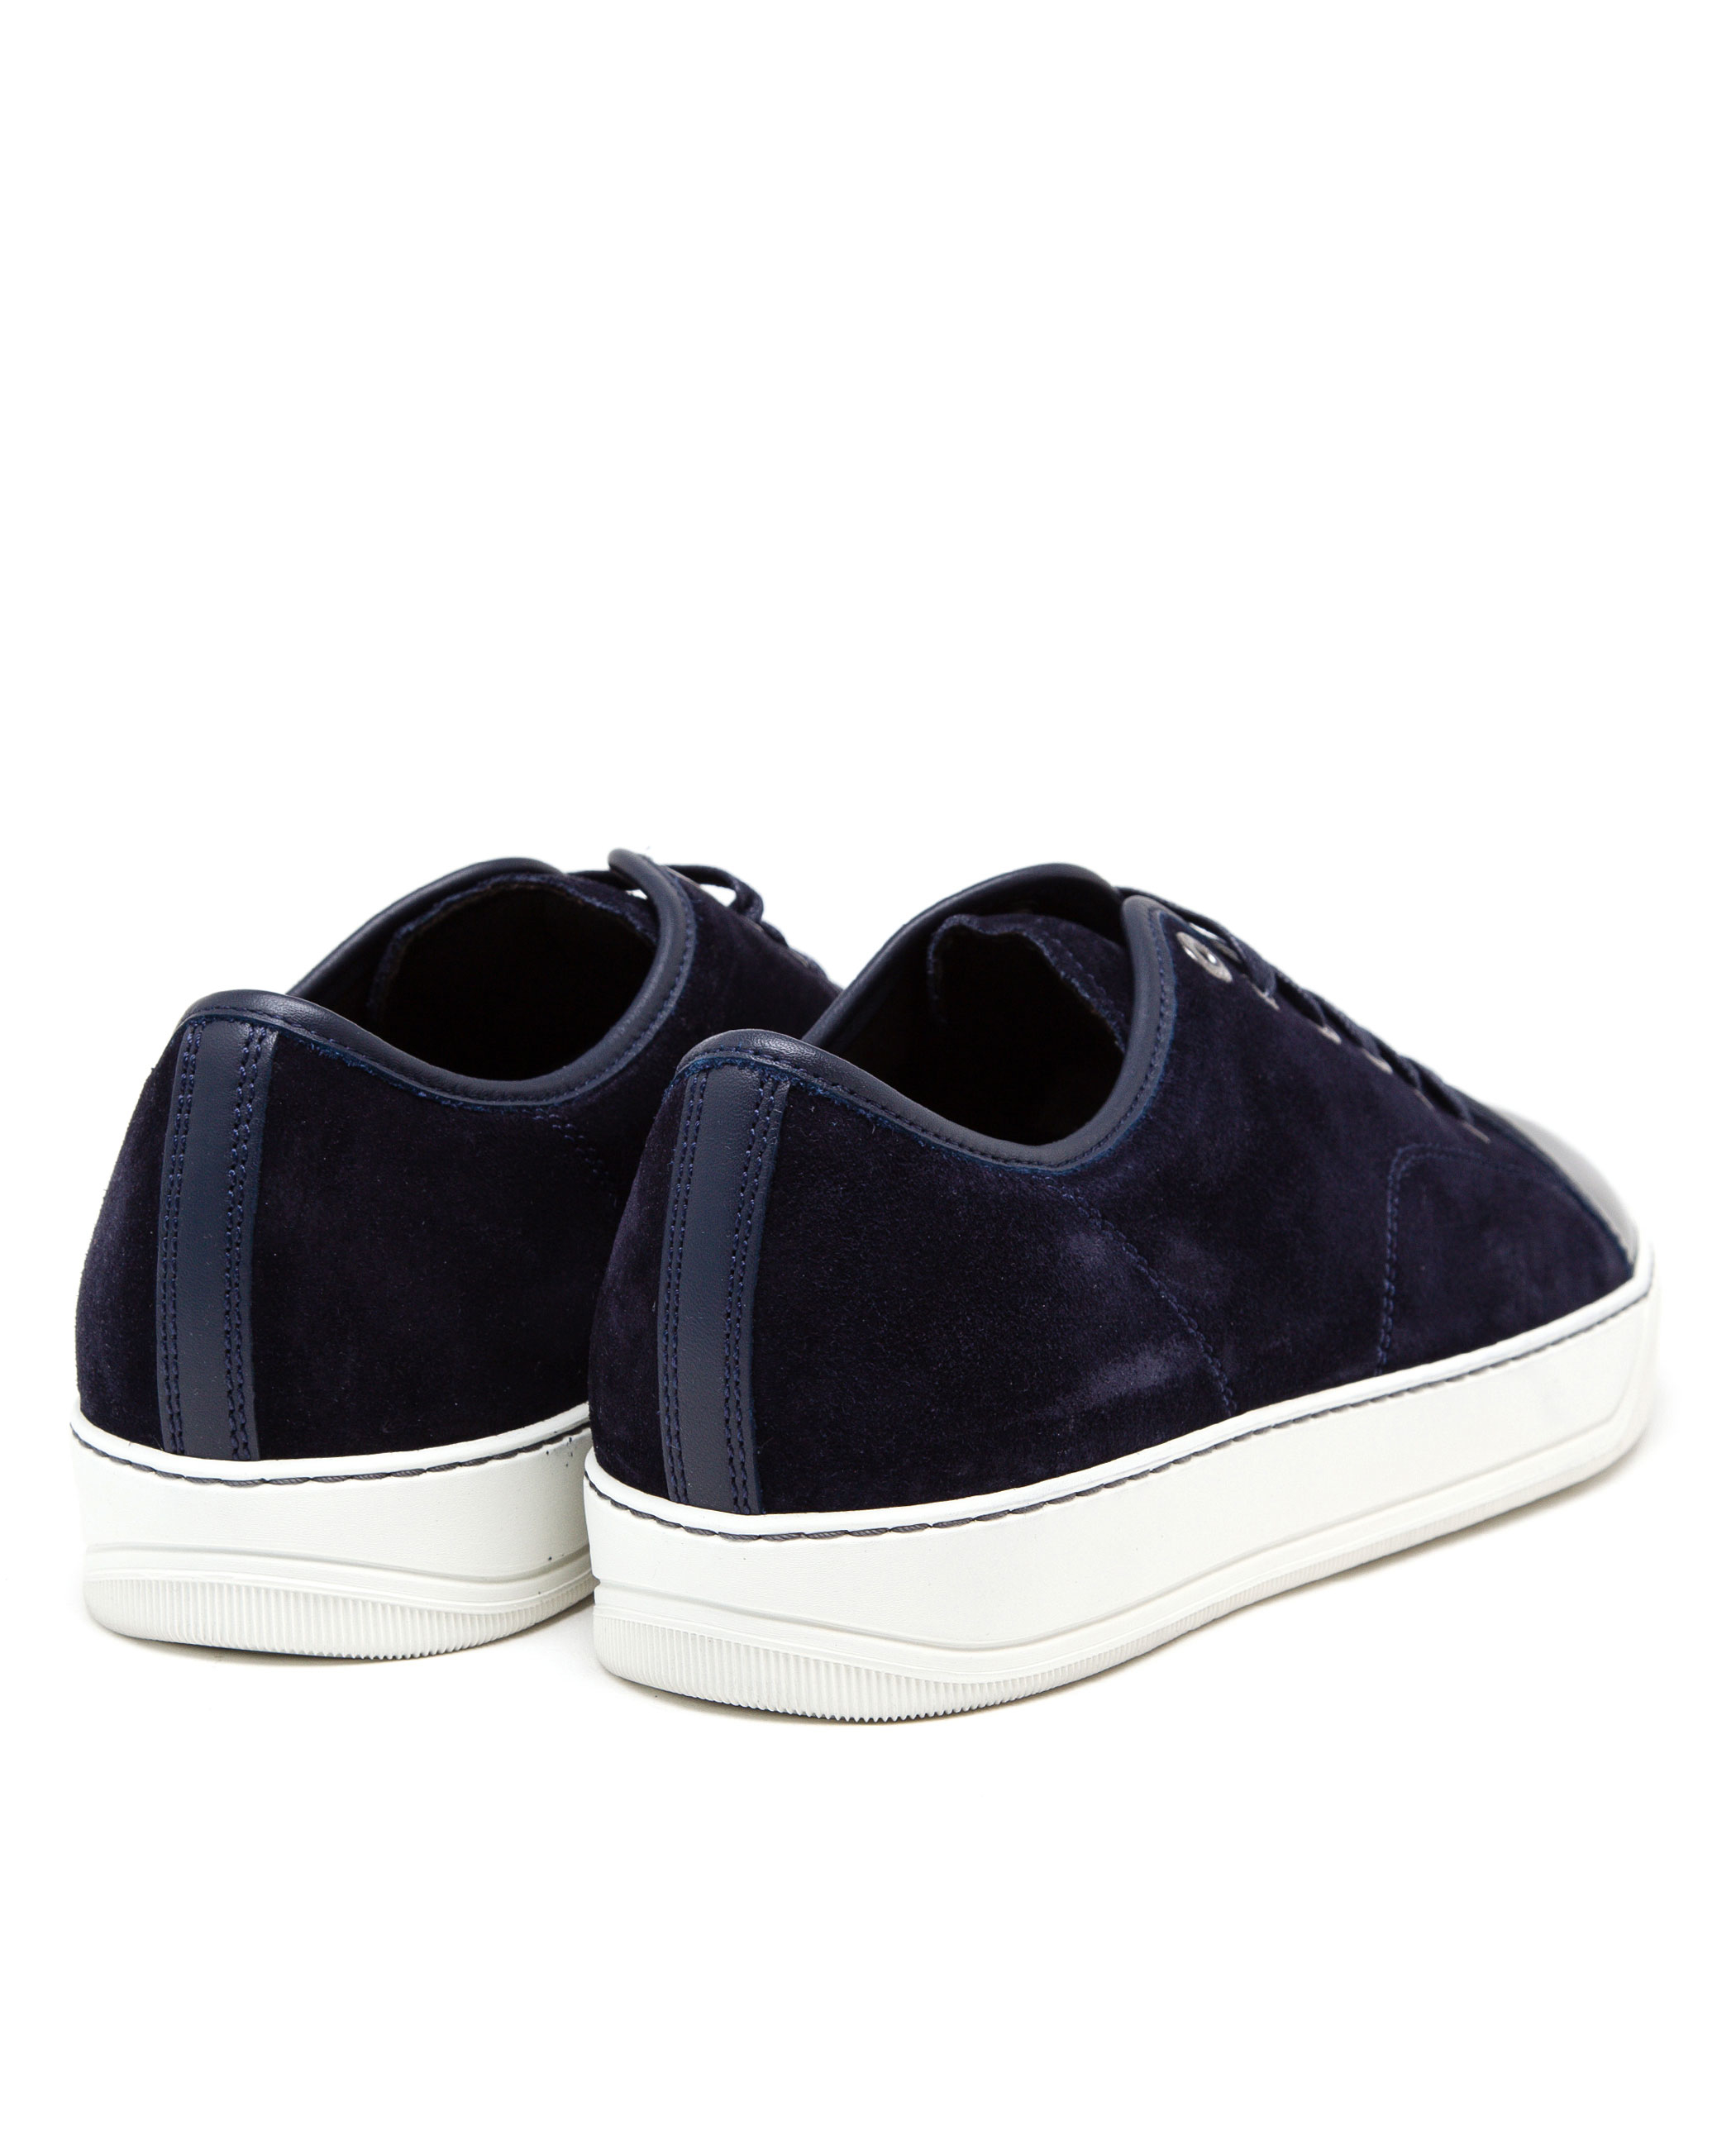 Lanvin Suede Trainers JK6zF